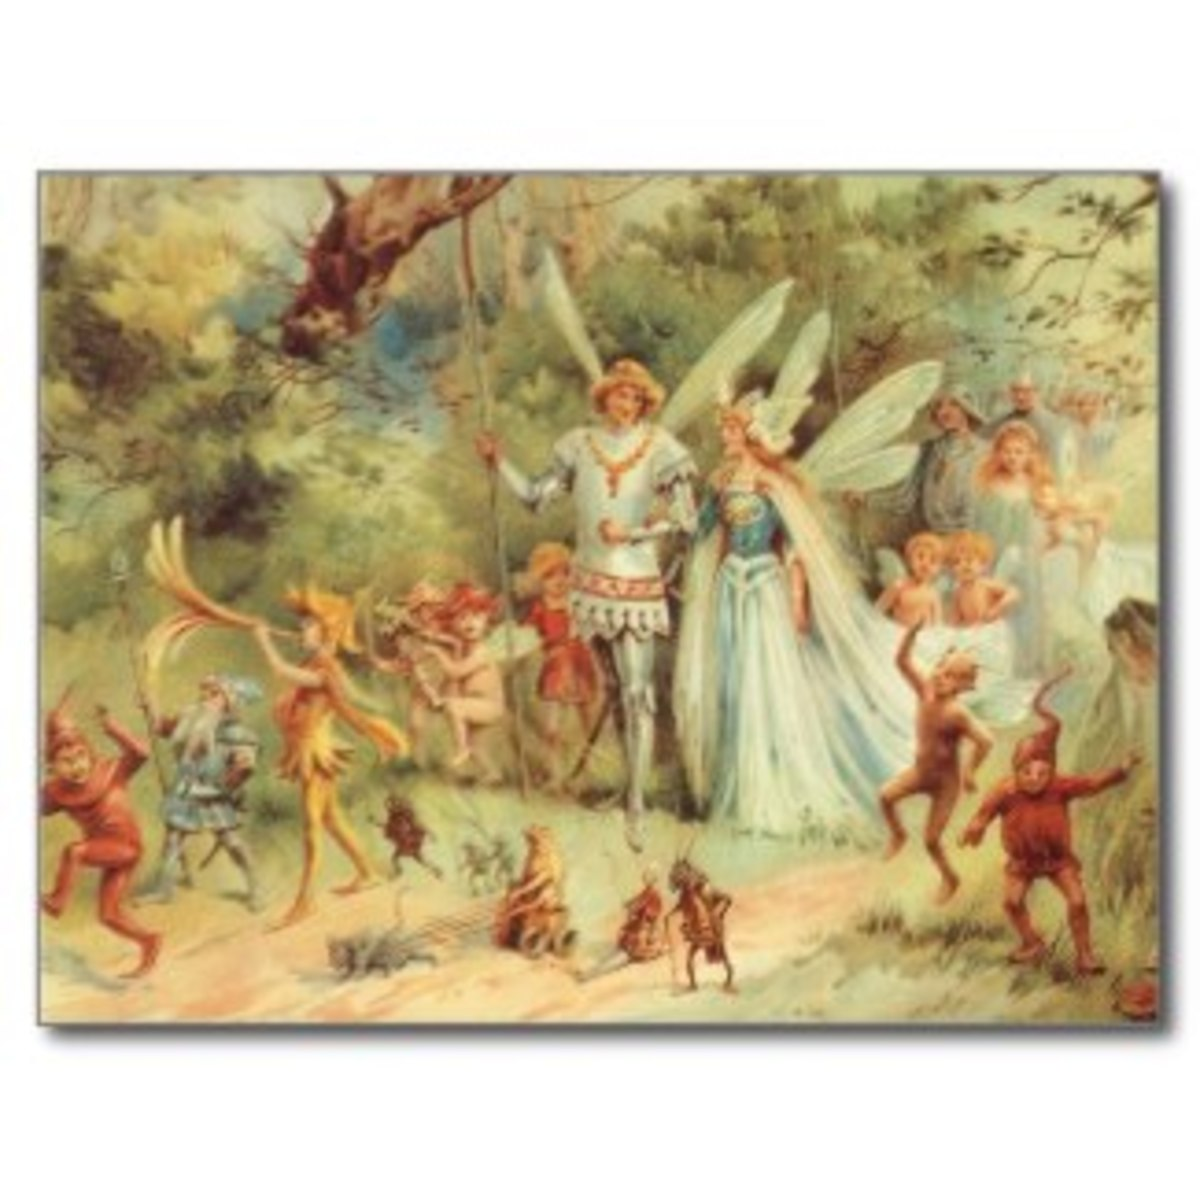 The wedding of the fairy prince and princess, held in a garden setting.